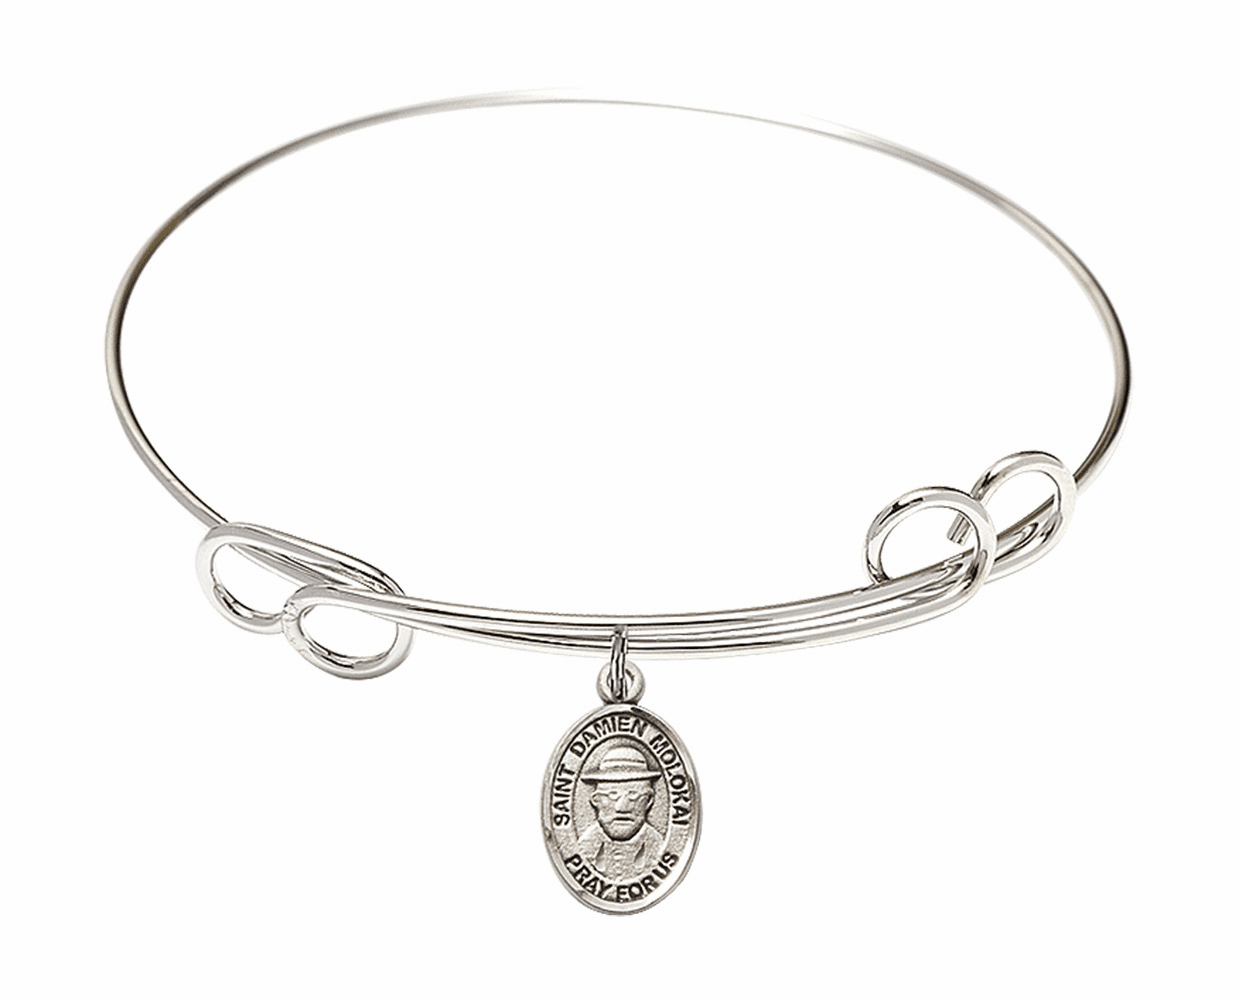 Round Loop St Damien of Molokai Bangle Charm Bracelet by Bliss